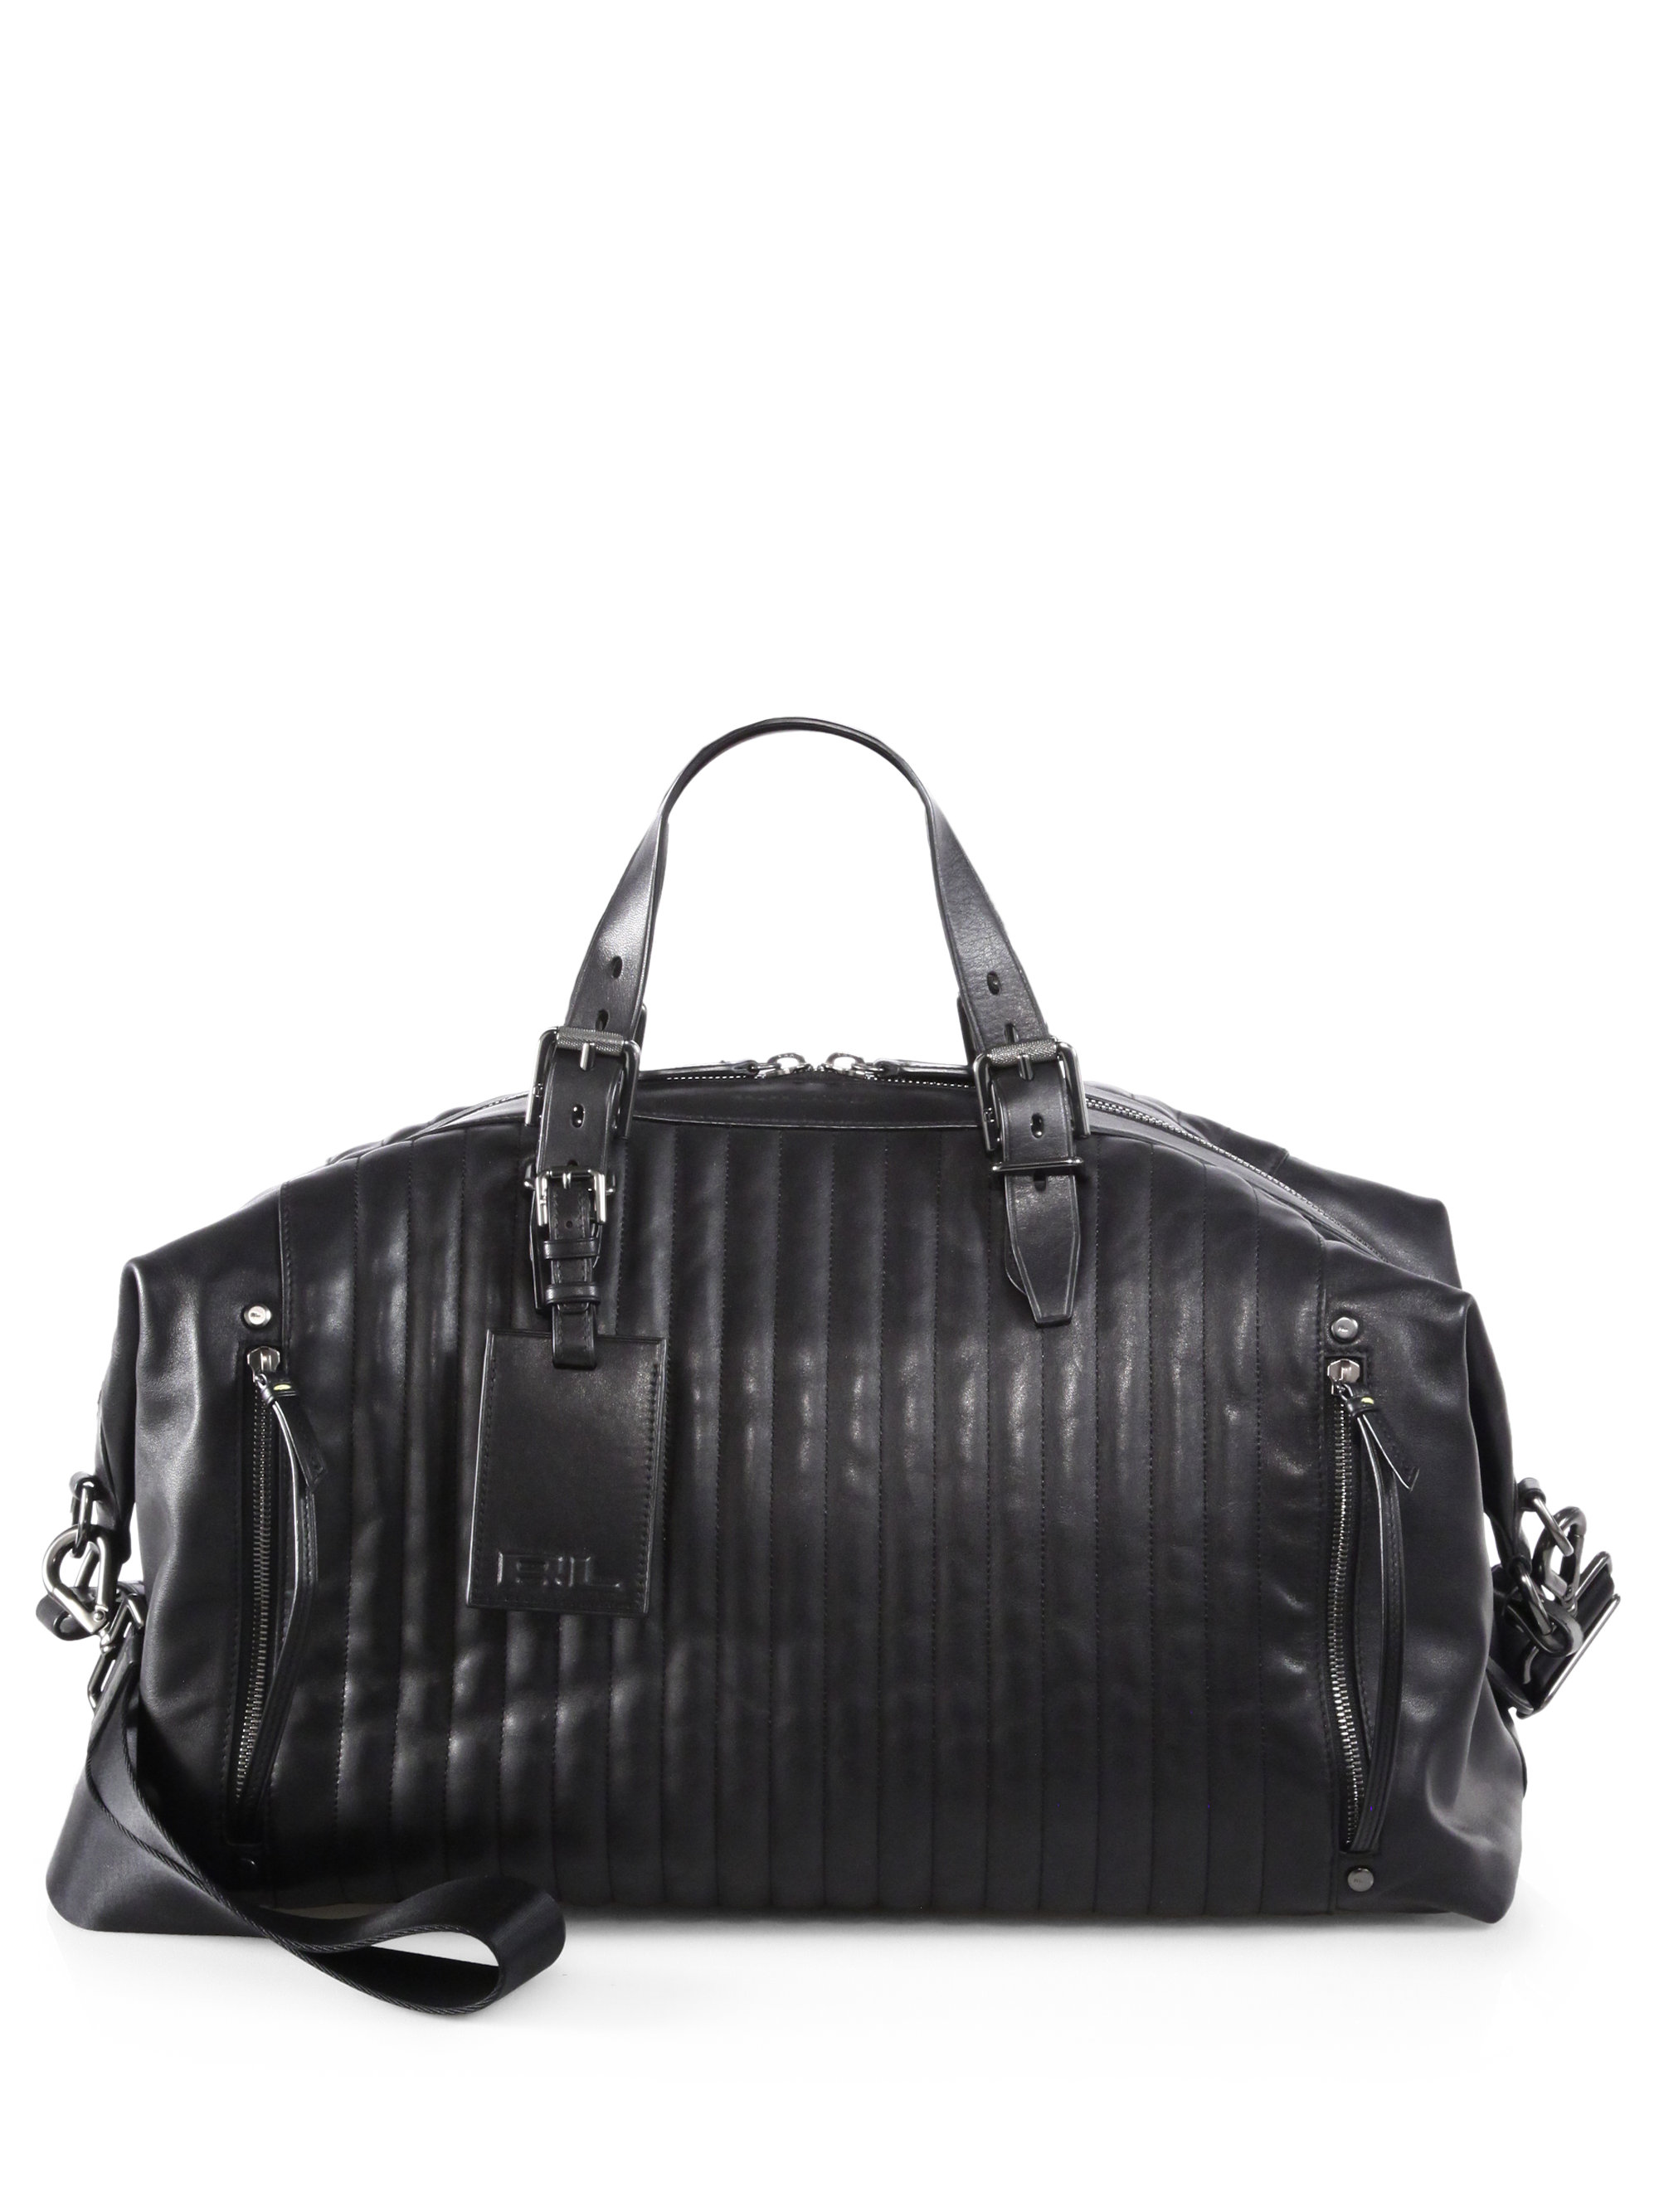 Black Quilted Leather Handbag | Luggage And Suitcases